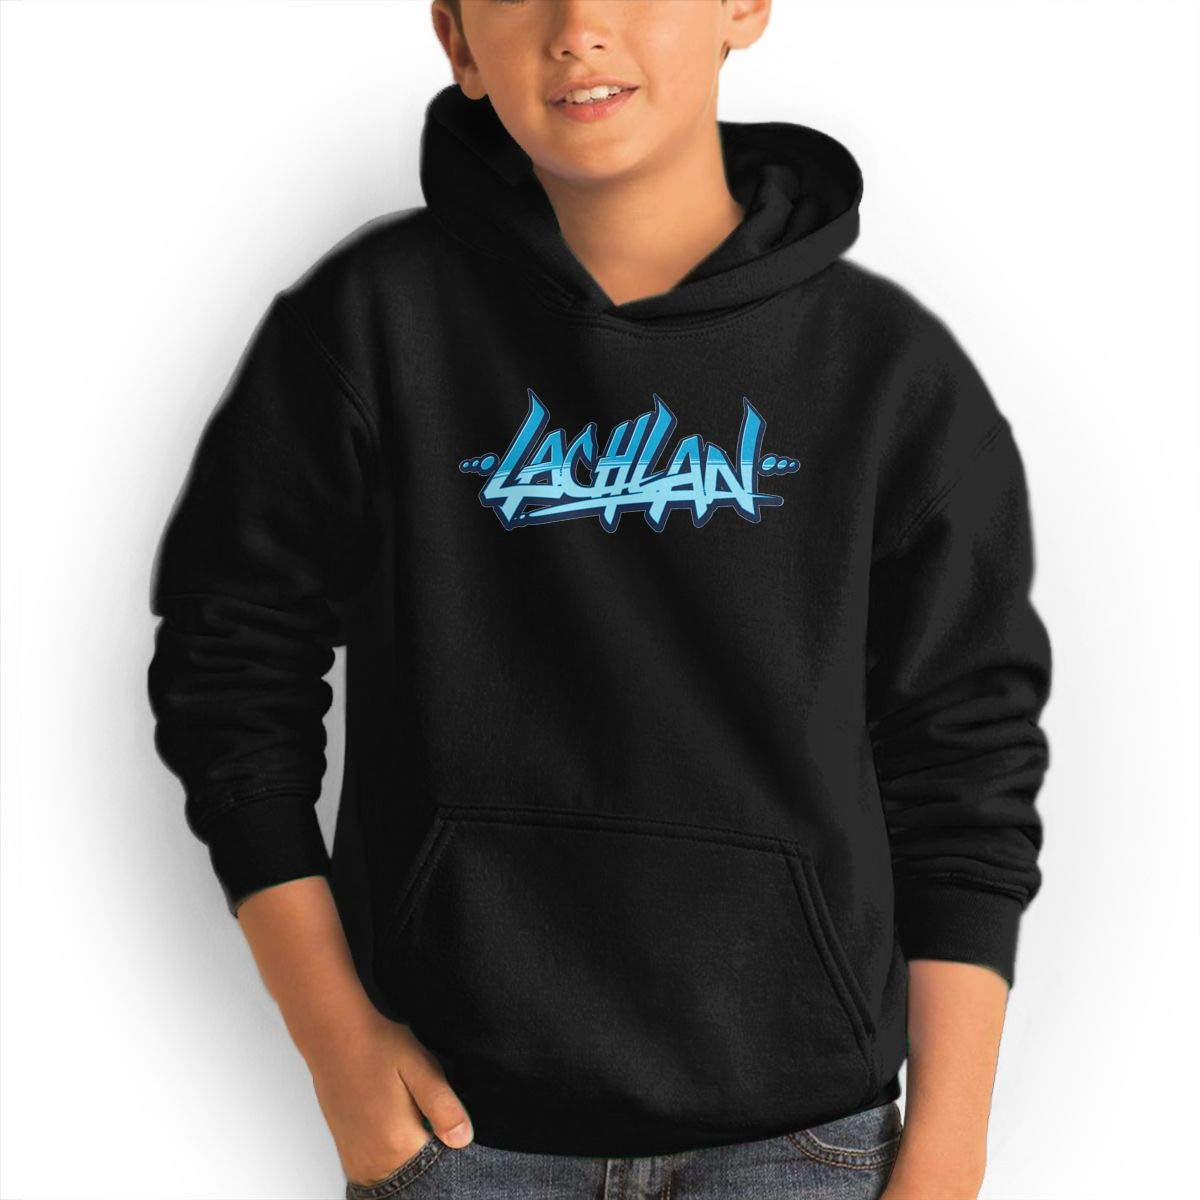 Teen S Lachlan Hooded Cool Aesthetic Pullover For Girls Teens Shirts